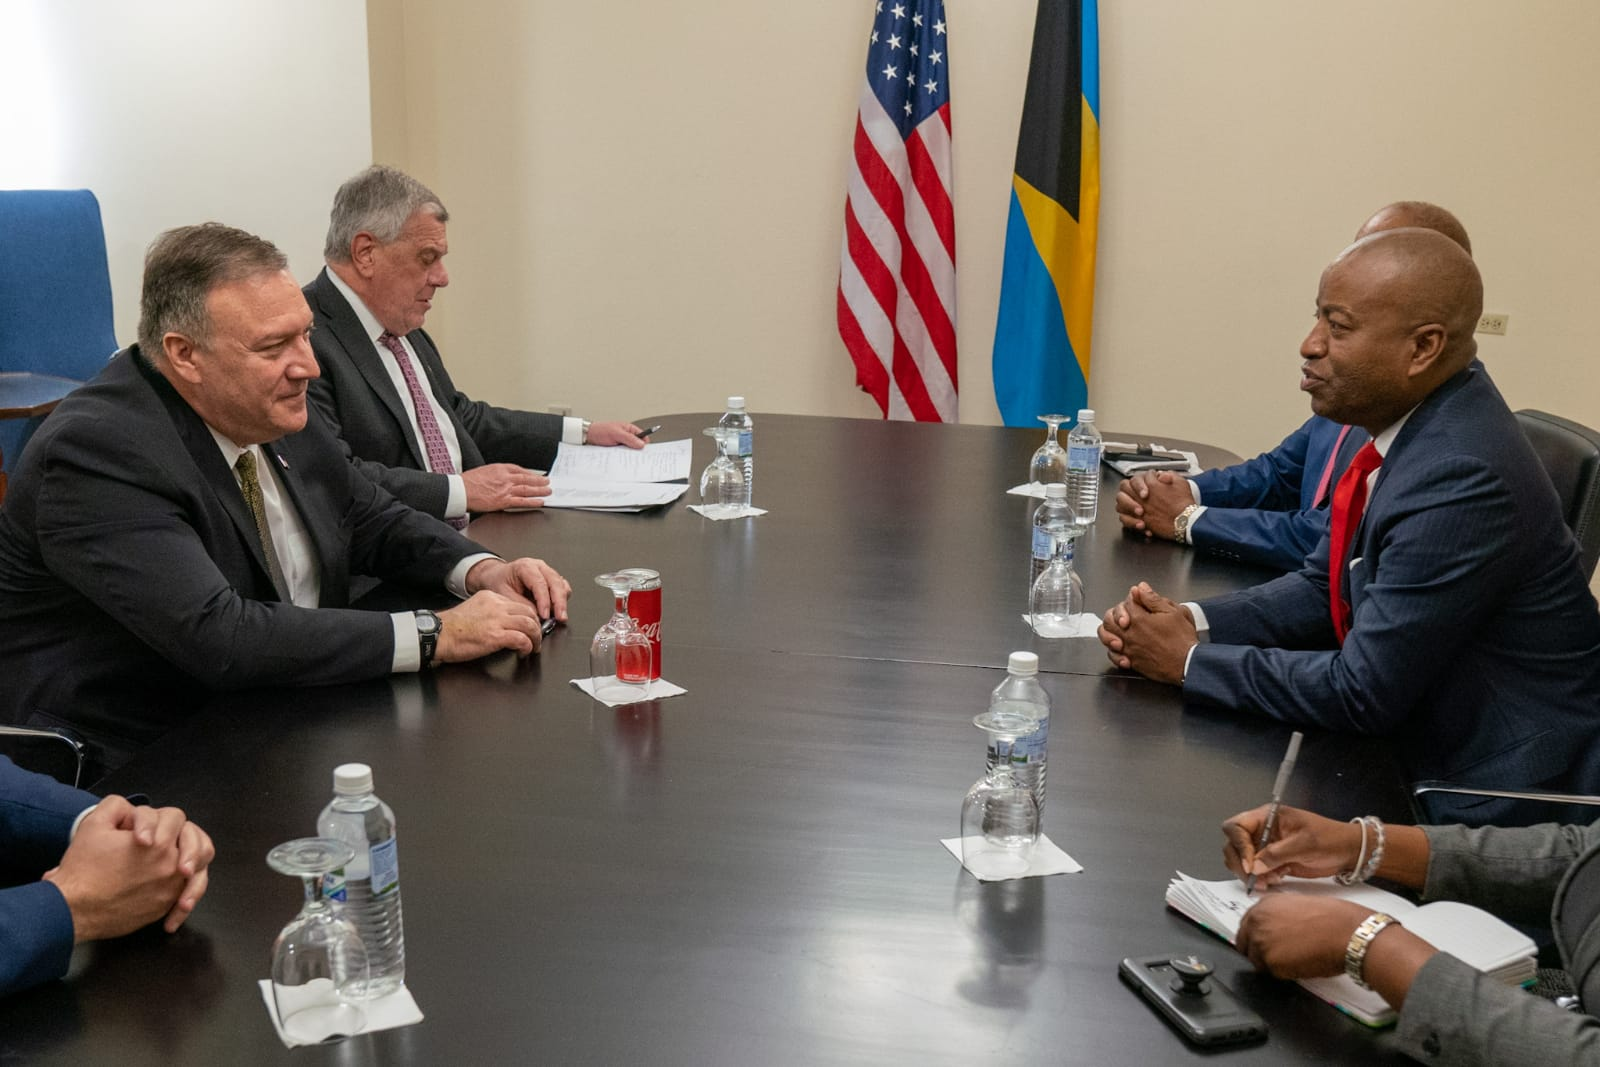 Jamaica roundtable talks staged to deepen U.S.-Caribbean ties